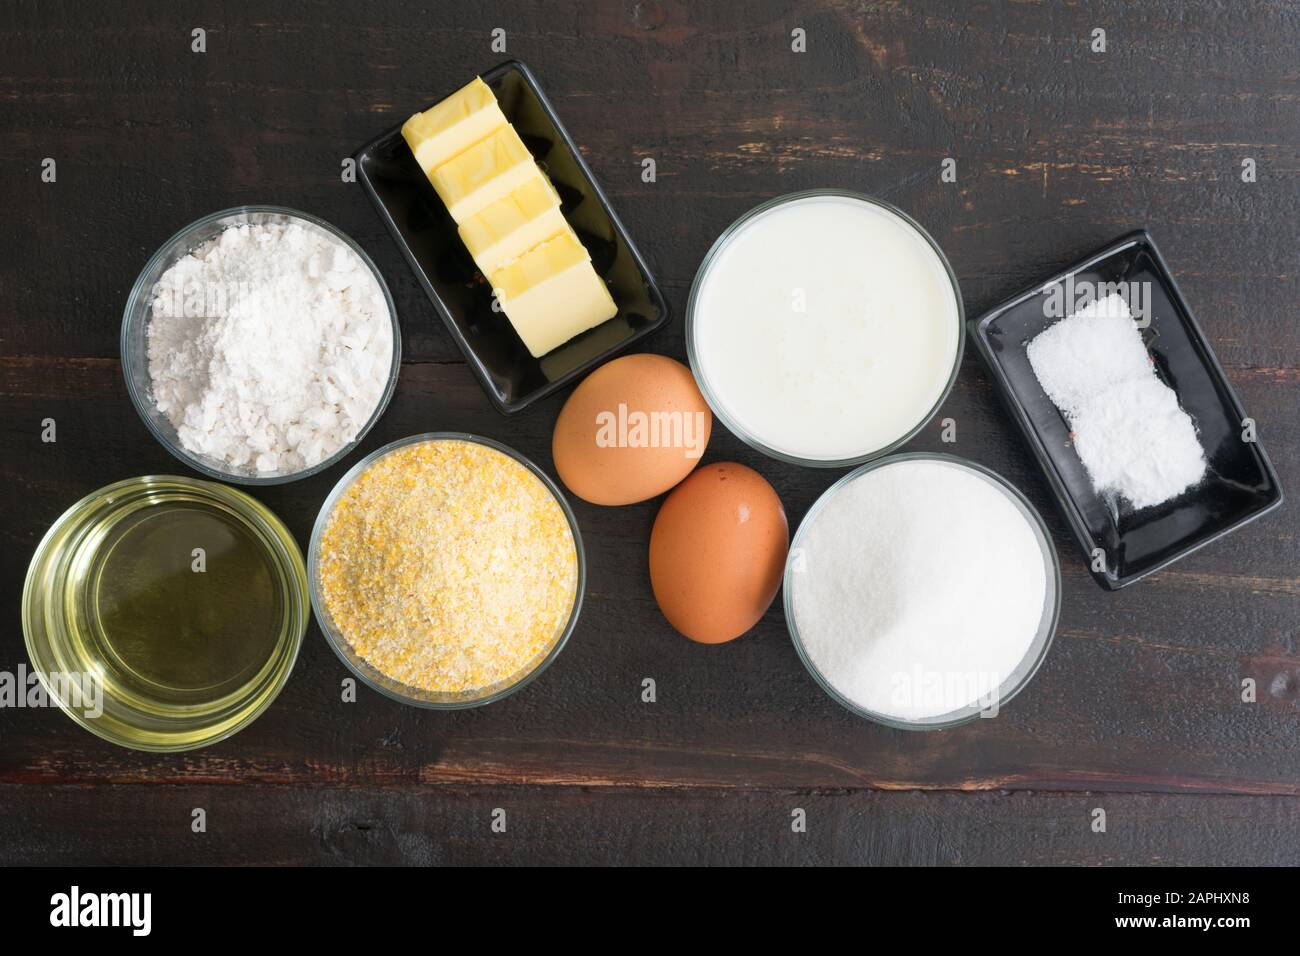 Southern Buttermilk Cornbread Ingredients: Cornmeal, eggs, and other ingredients used to make a traditional Southern dish Stock Photo